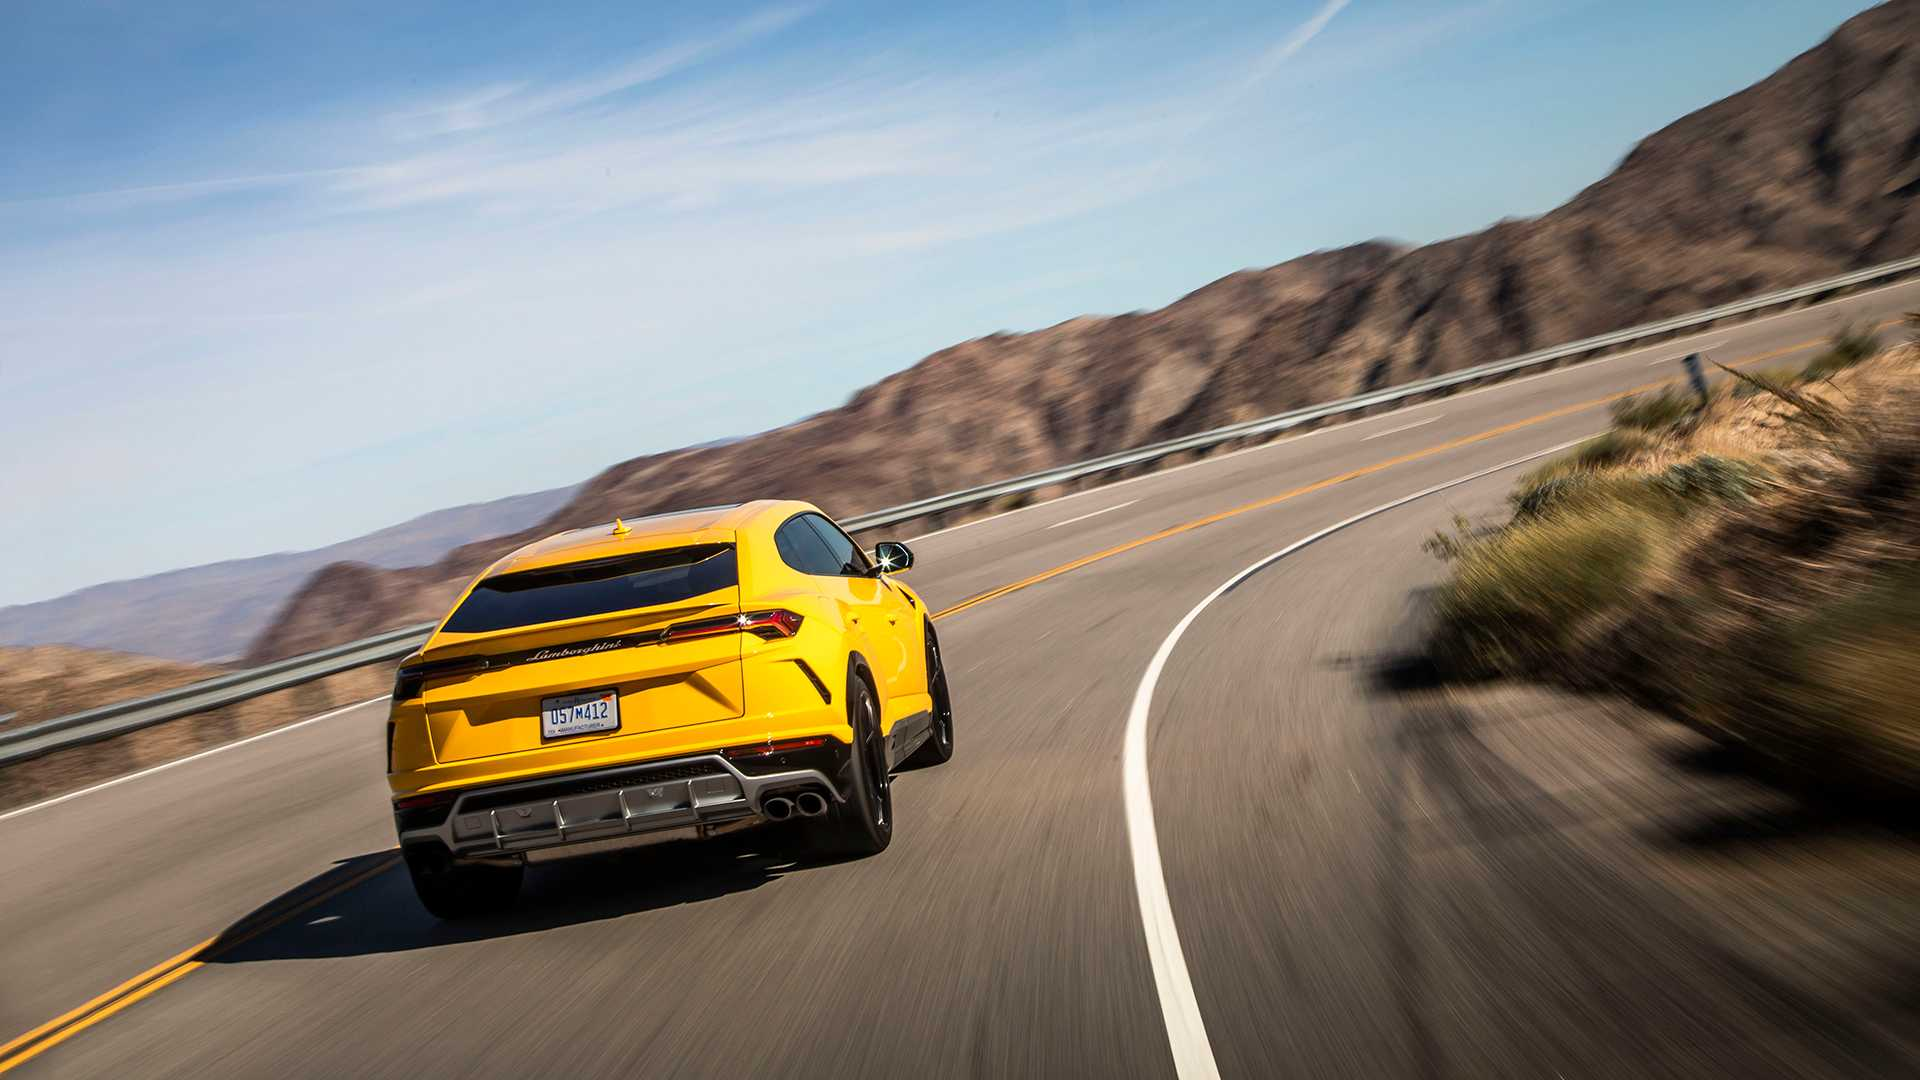 2019 Lamborghini Urus Rear Wallpaper (5)